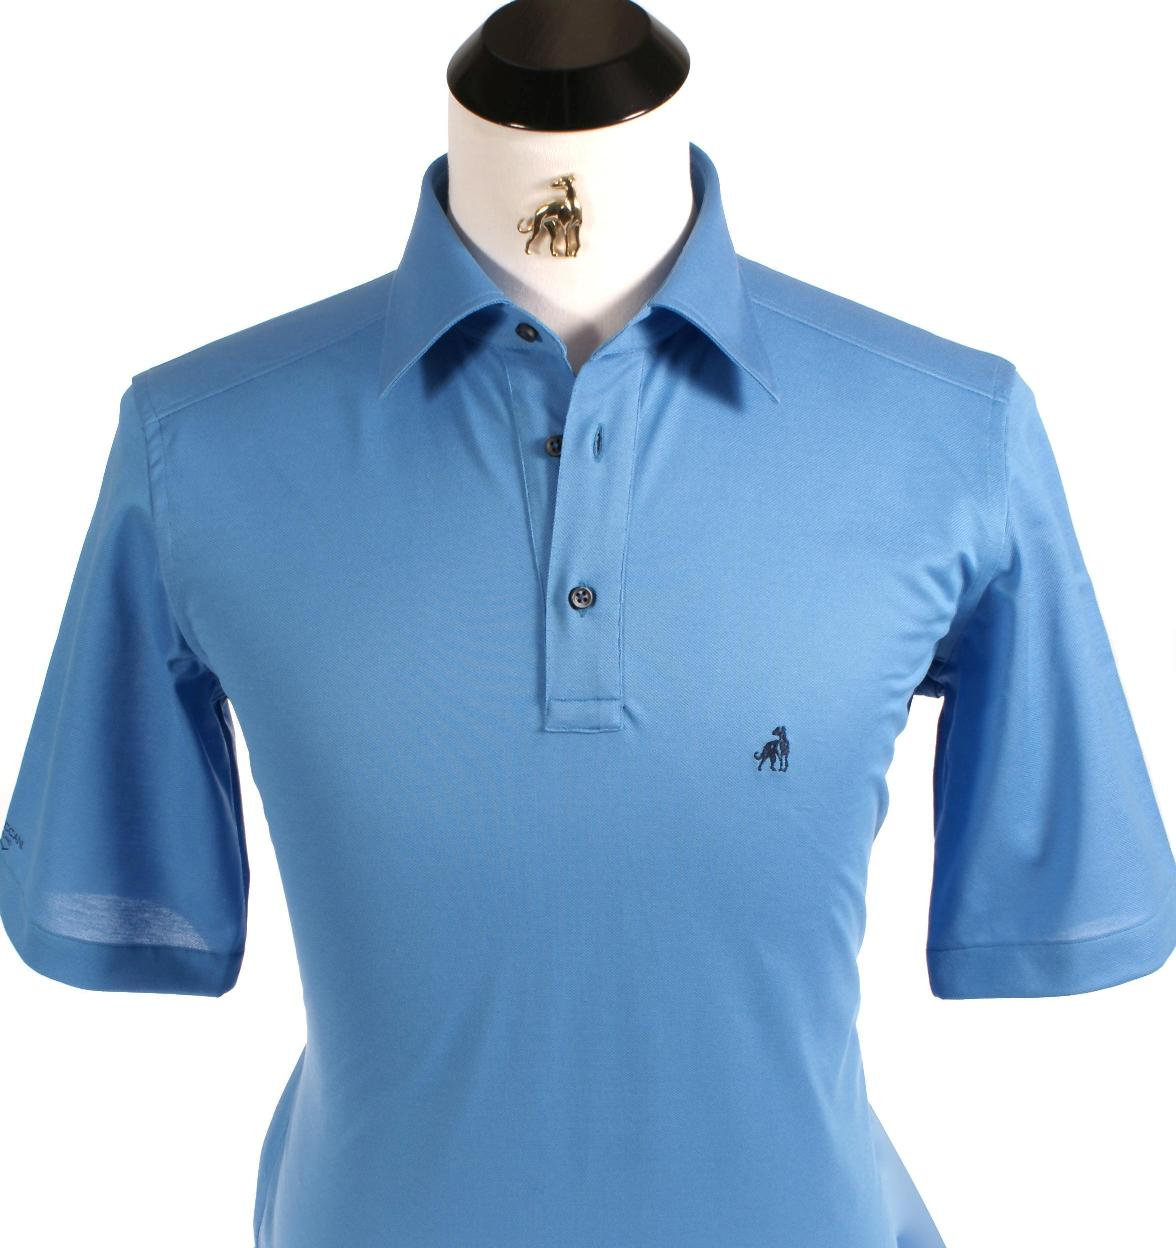 Tee Off Treccani Milano Custom Polo Shirts Bring Luxury In Italian